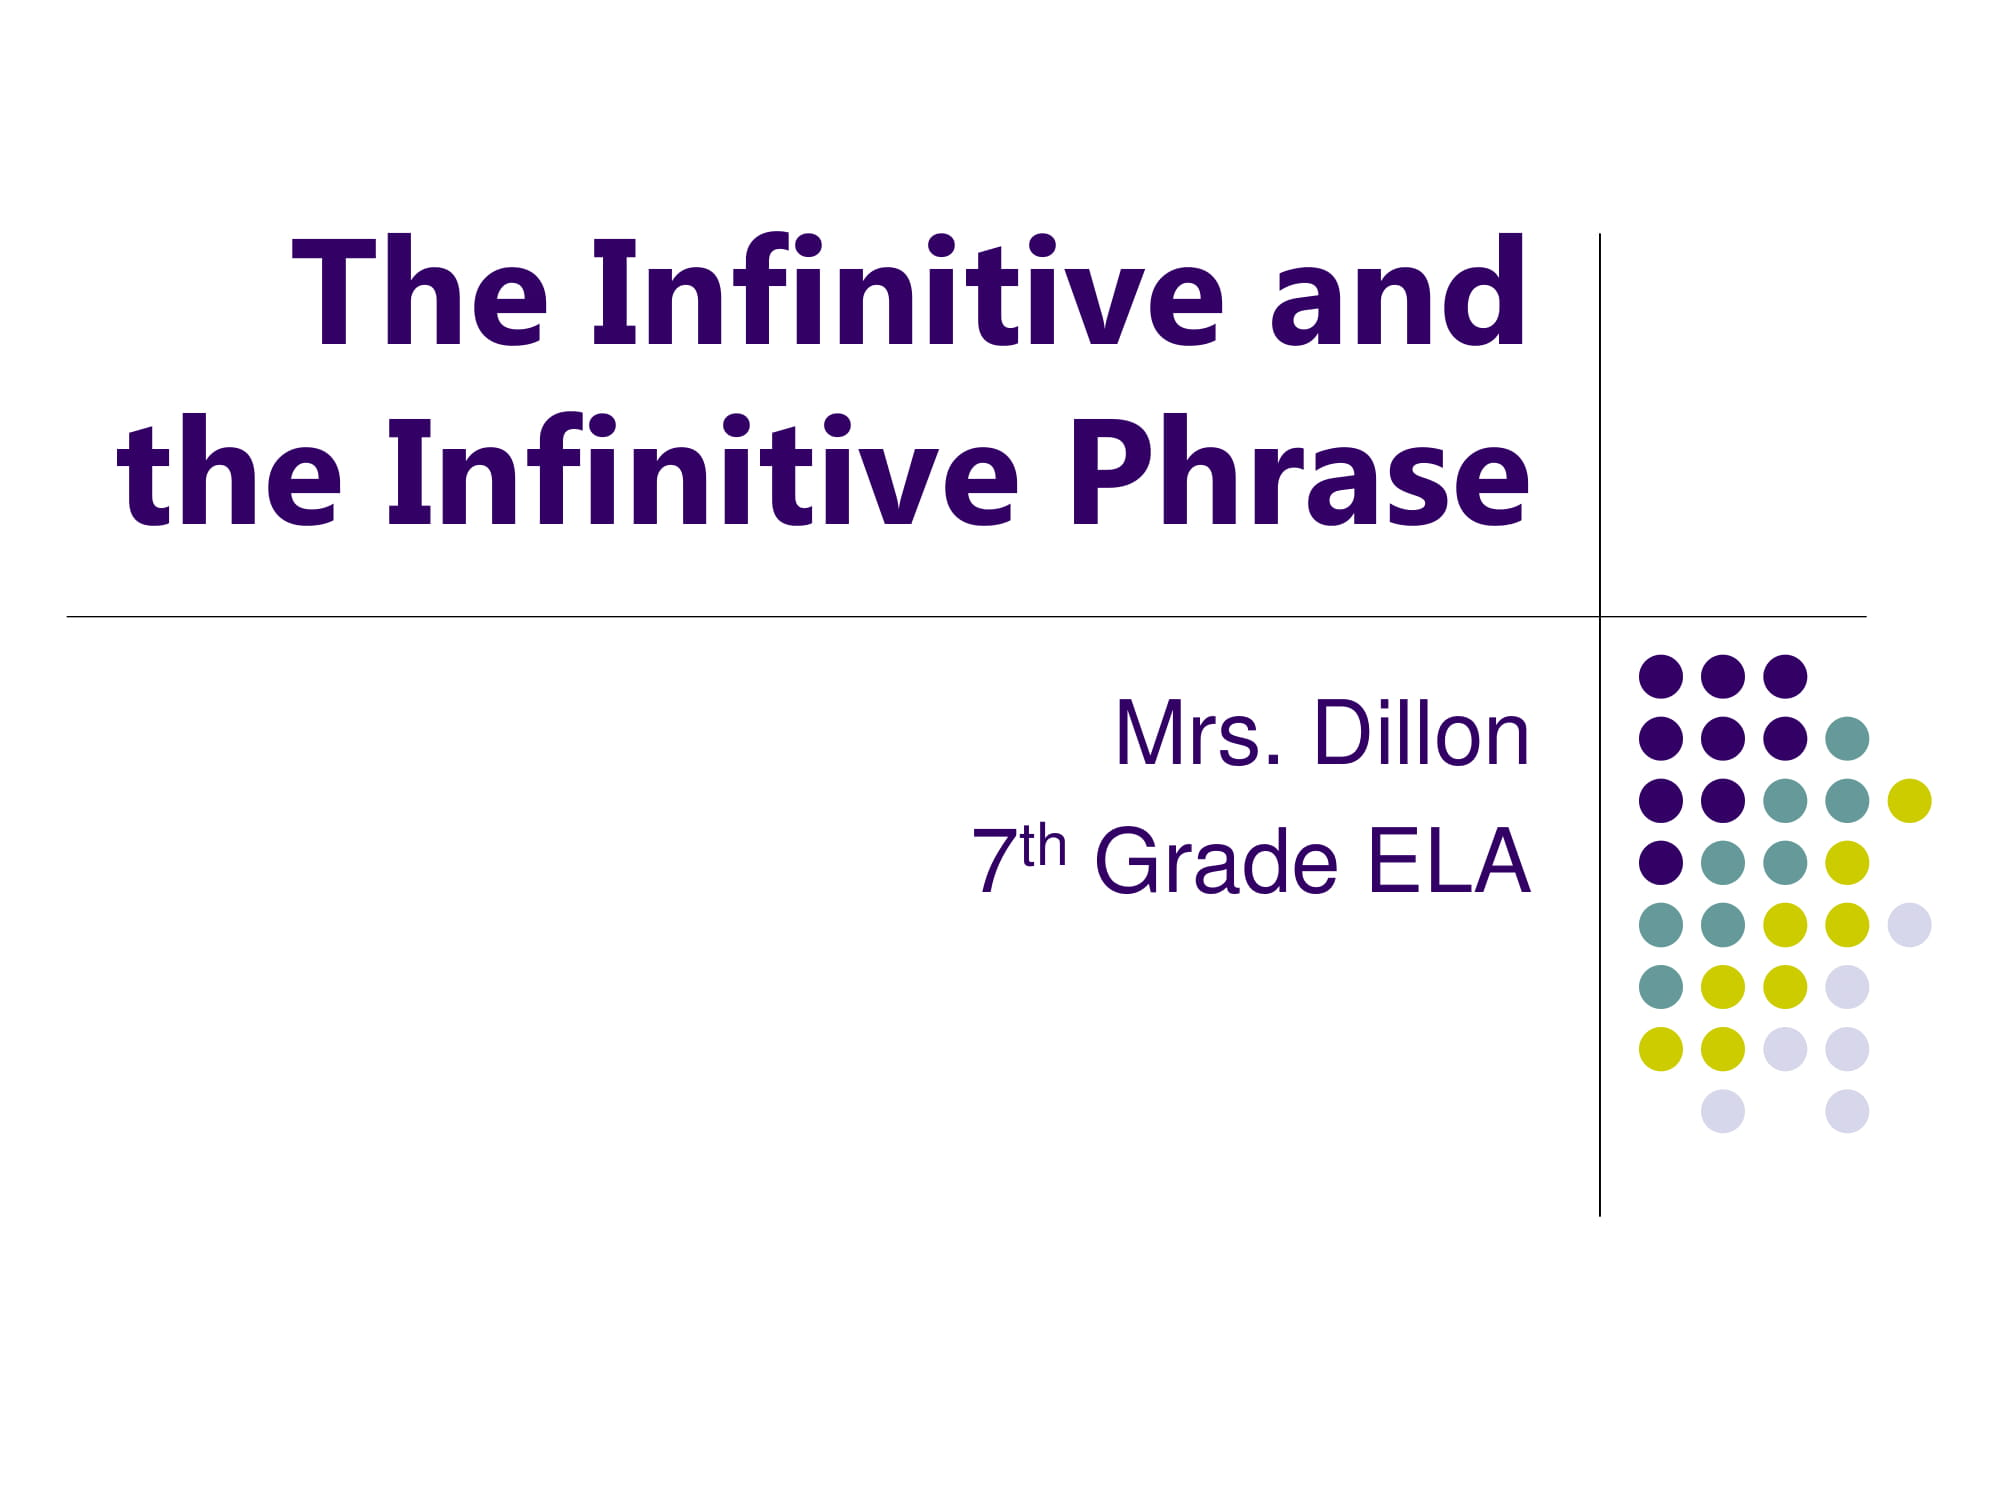 9 Infinitive Phrase Worksheets And Examples Pdf